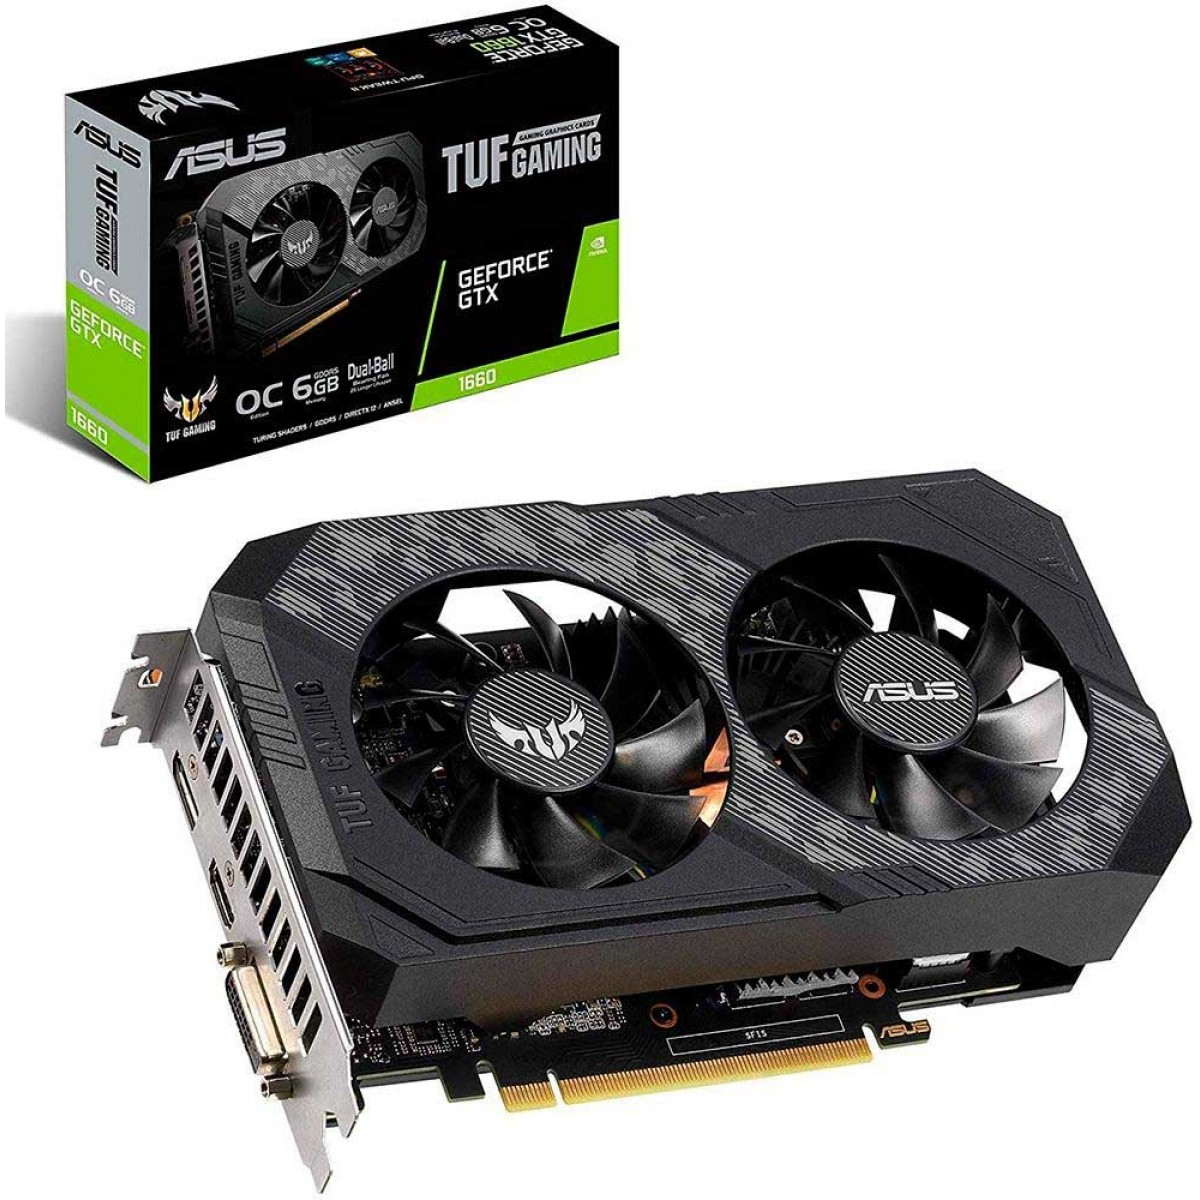 Placa de Vídeo Asus TUF GeForce GTX 1660 Dual OC, 6GB GDDR5, 192Bit, TUF-GTX1660-O6G-GAMING